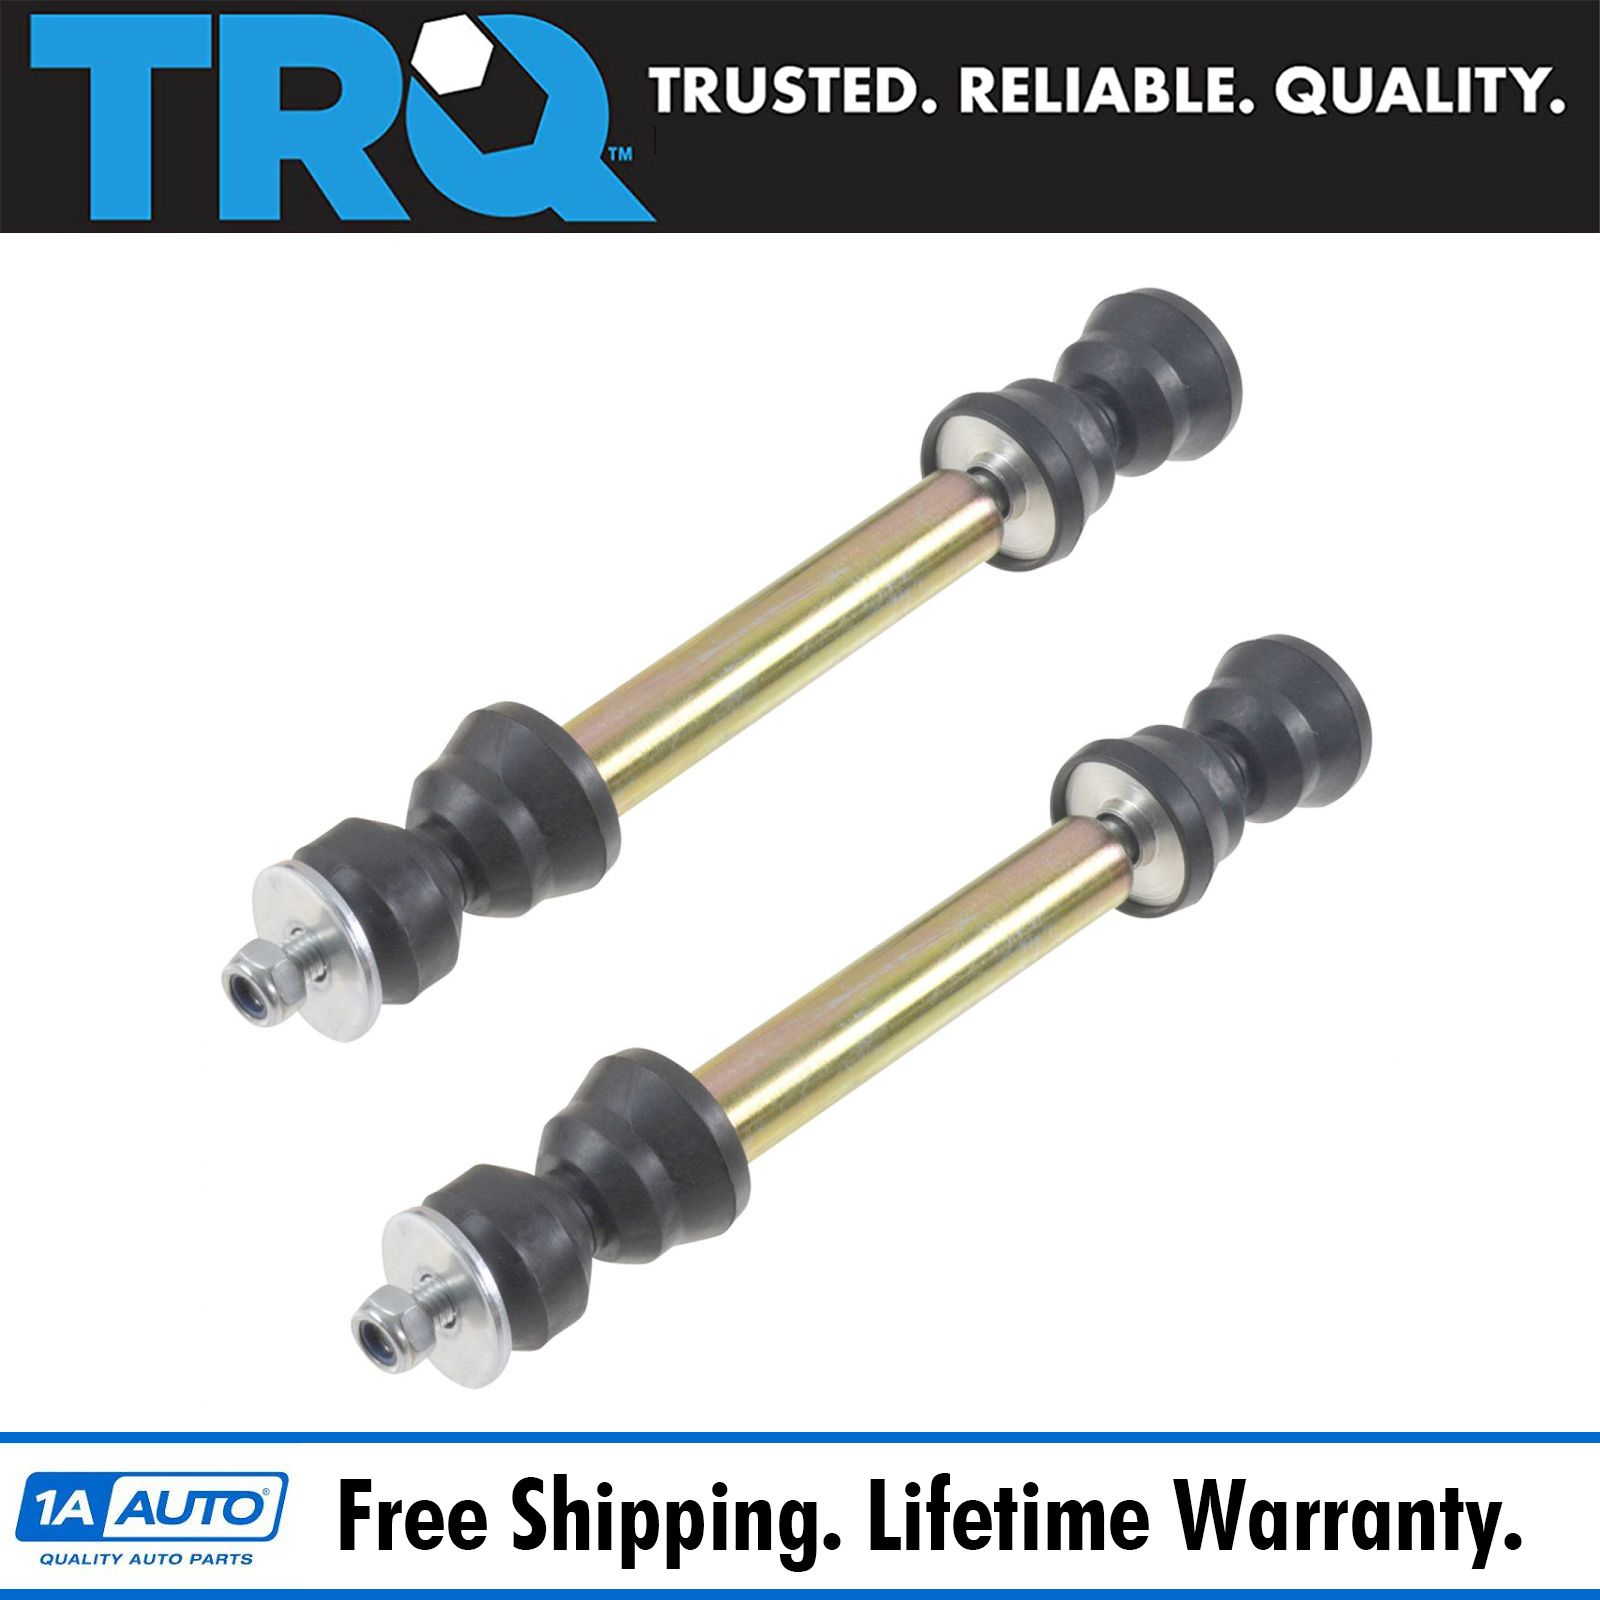 Toyota Celica 1990 1991 Split Design Stabilizer: Front Sway Bar Link Kit Pair Set Of 2 For Chevy GMC Pickup